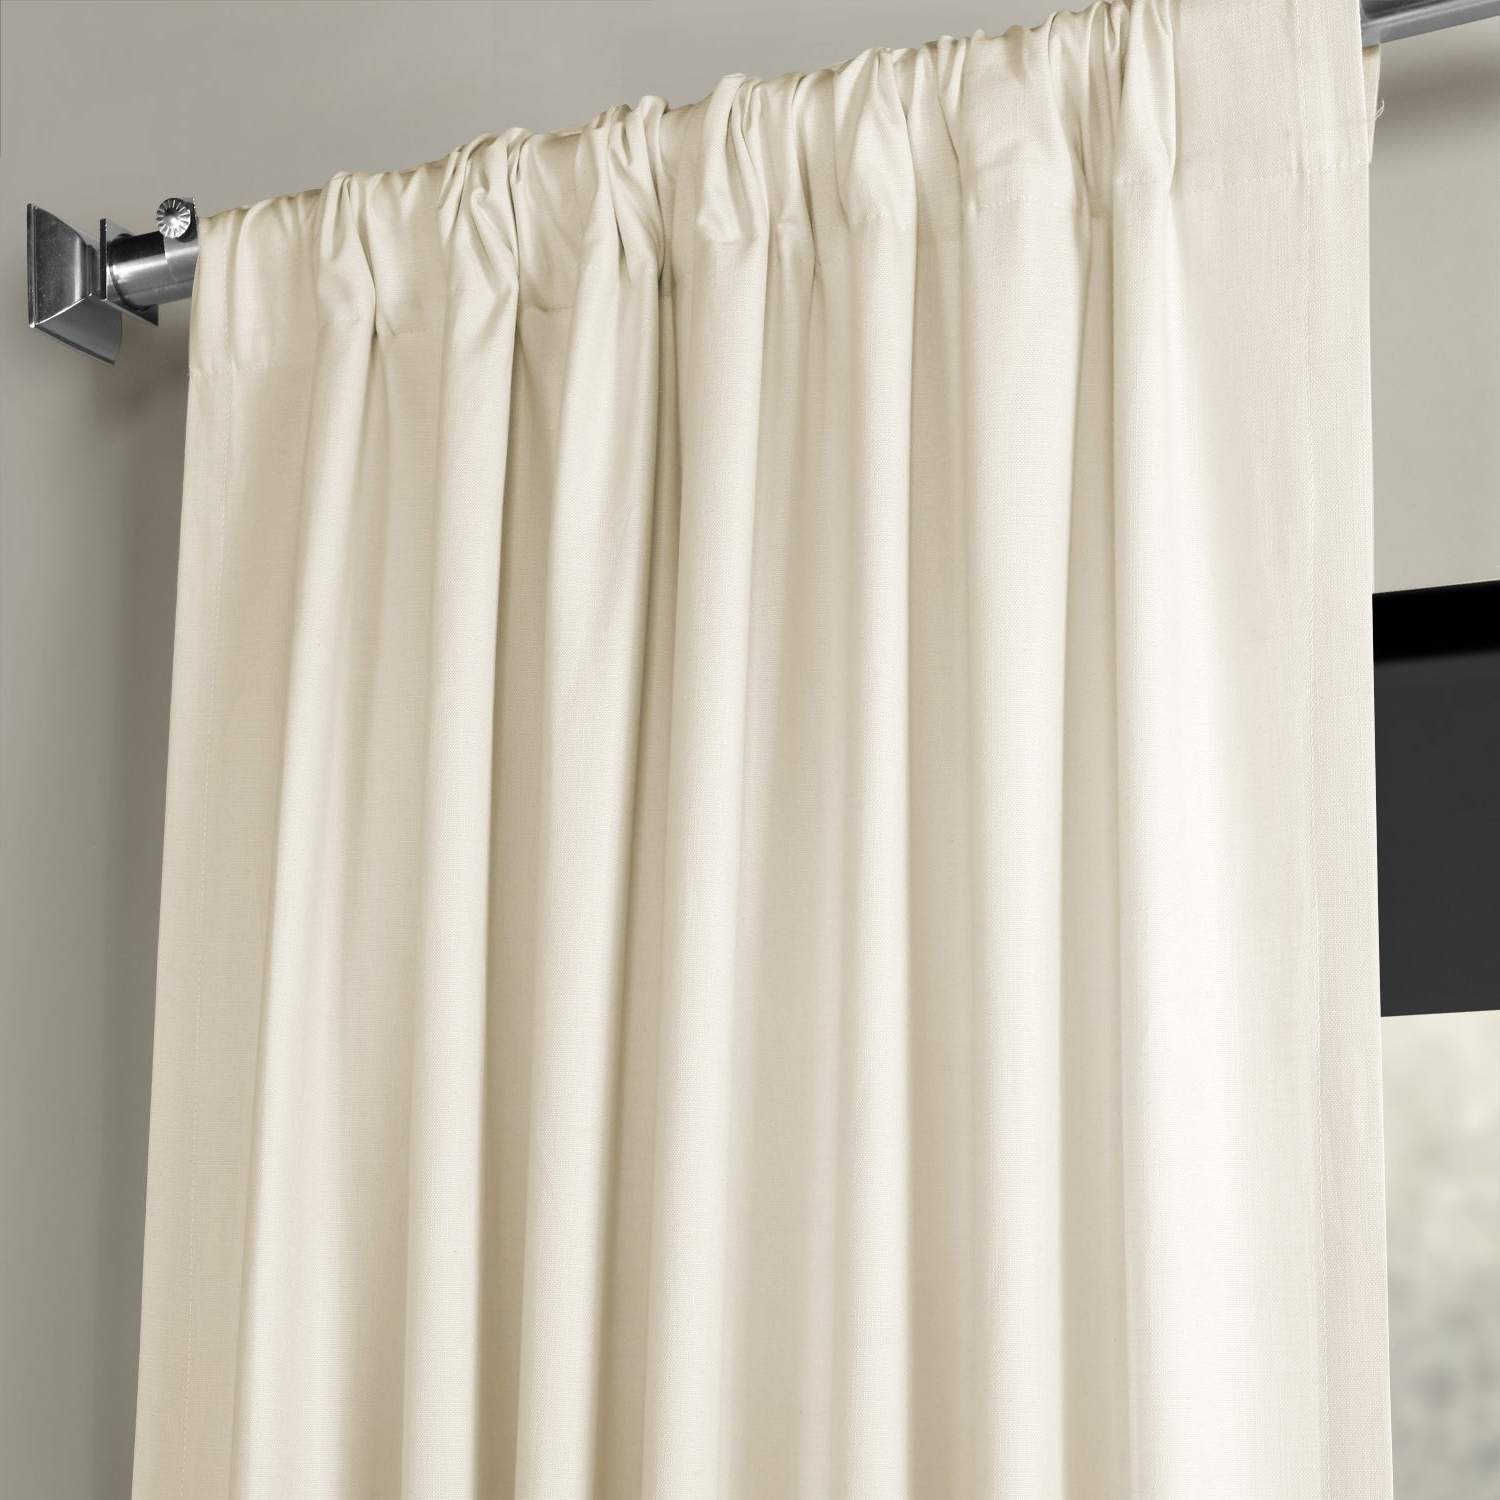 2021 Exclusive Fabrics Solid Country Cotton Linen Weave Curtain Panel Within Solid Country Cotton Linen Weave Curtain Panels (View 1 of 20)